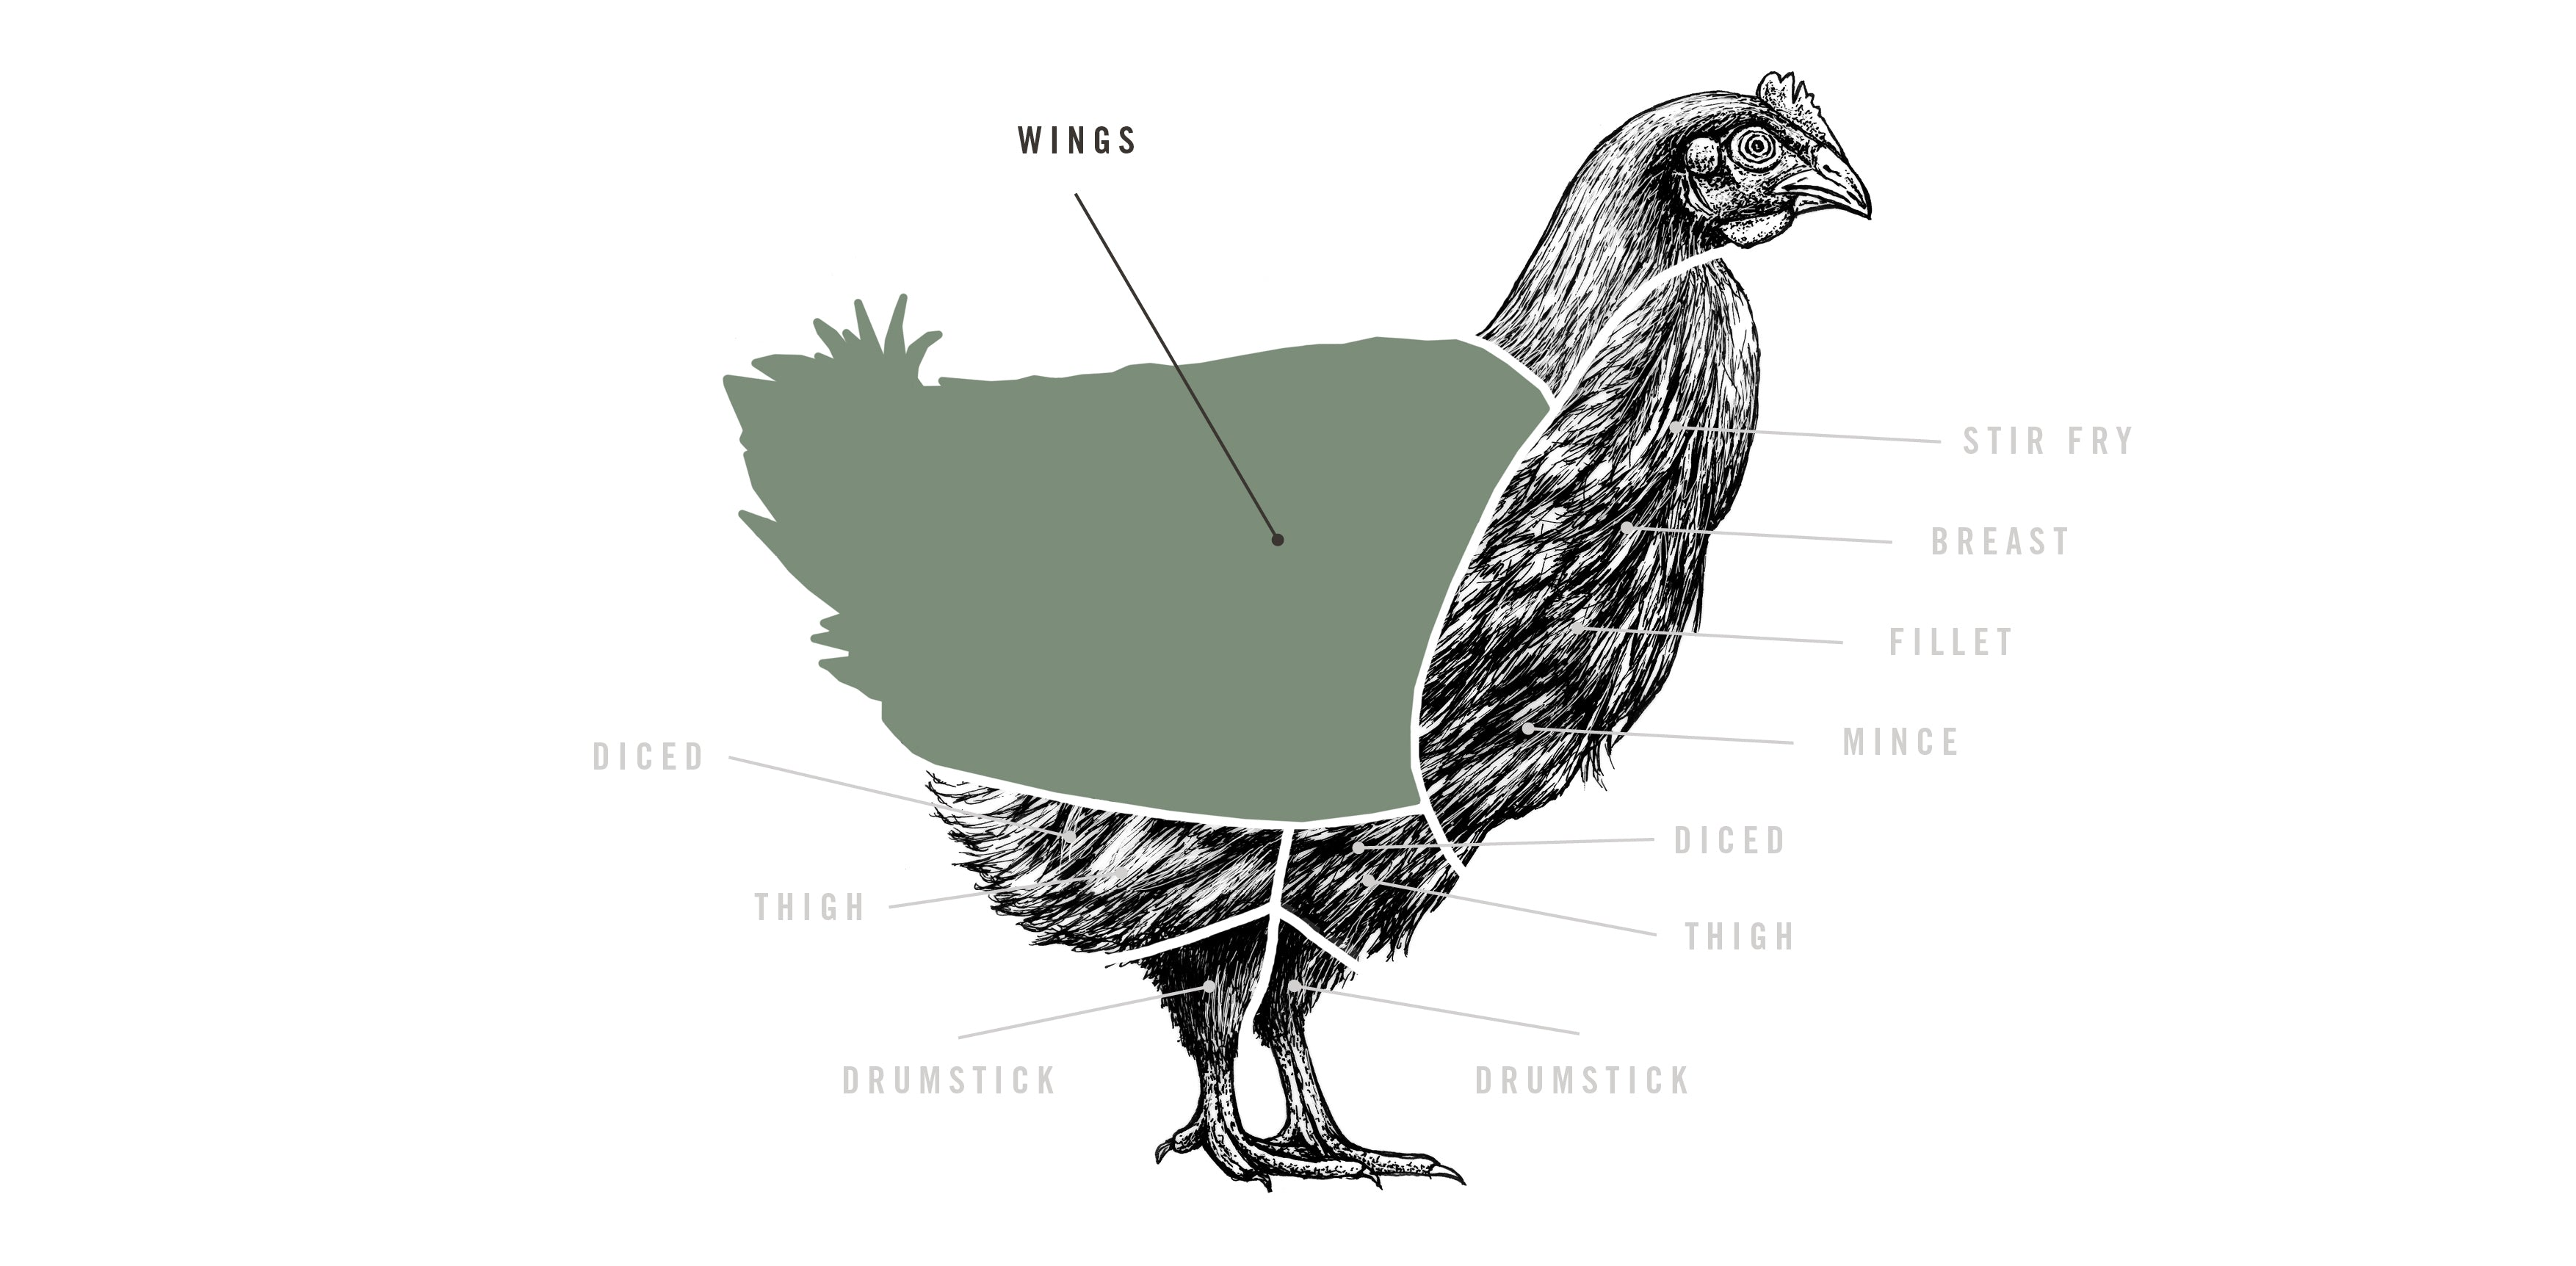 Free Range Chicken Wings Pipers Farm Diagram Of The Wing A Top View Meat Cuts